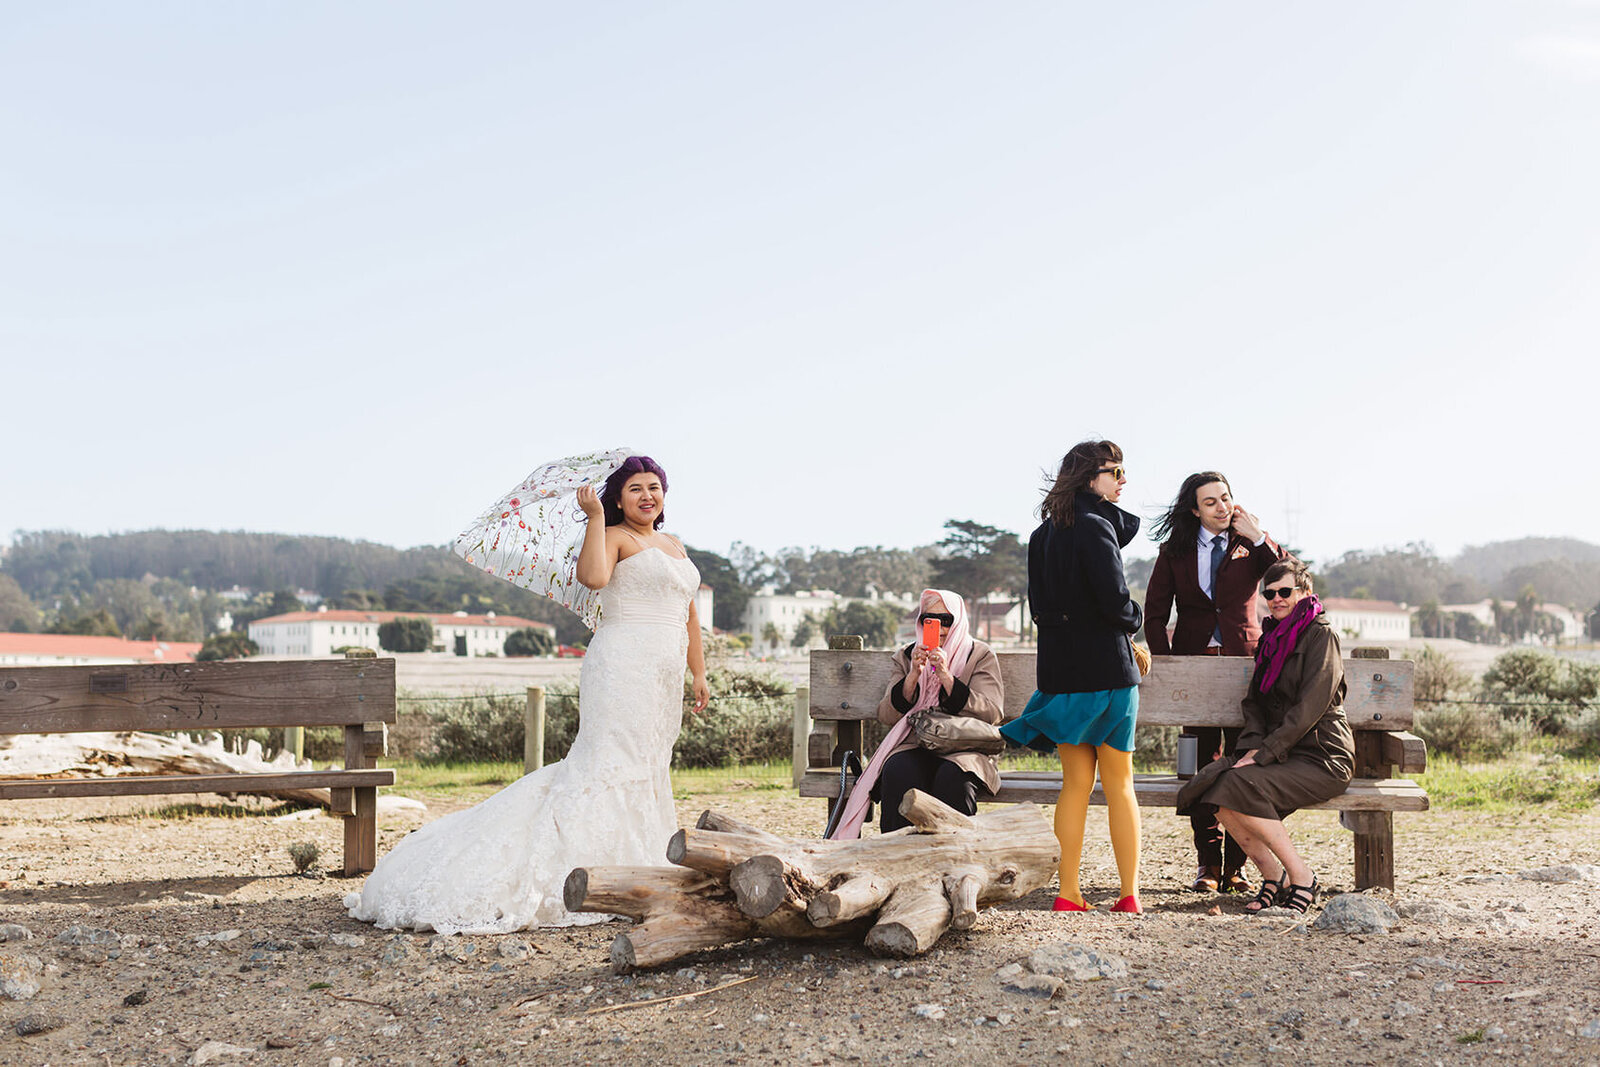 Golden-Gate-Bridge-small-wedding-elopement---Zoe-Larkin-Photography